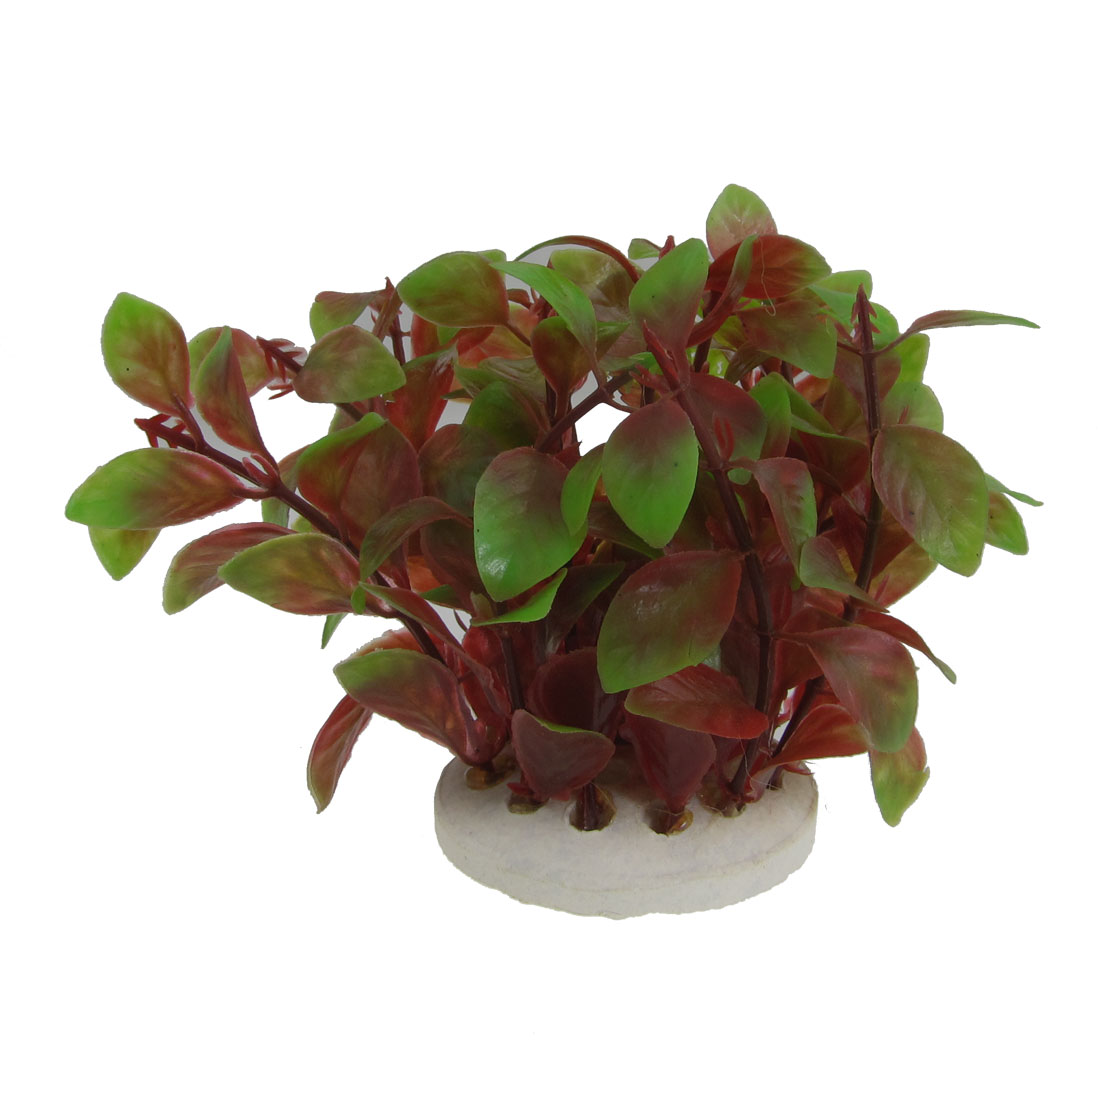 "Ceramic Base Red Pale Green Simulation Water Plants for Aquarium 3.1"" High"